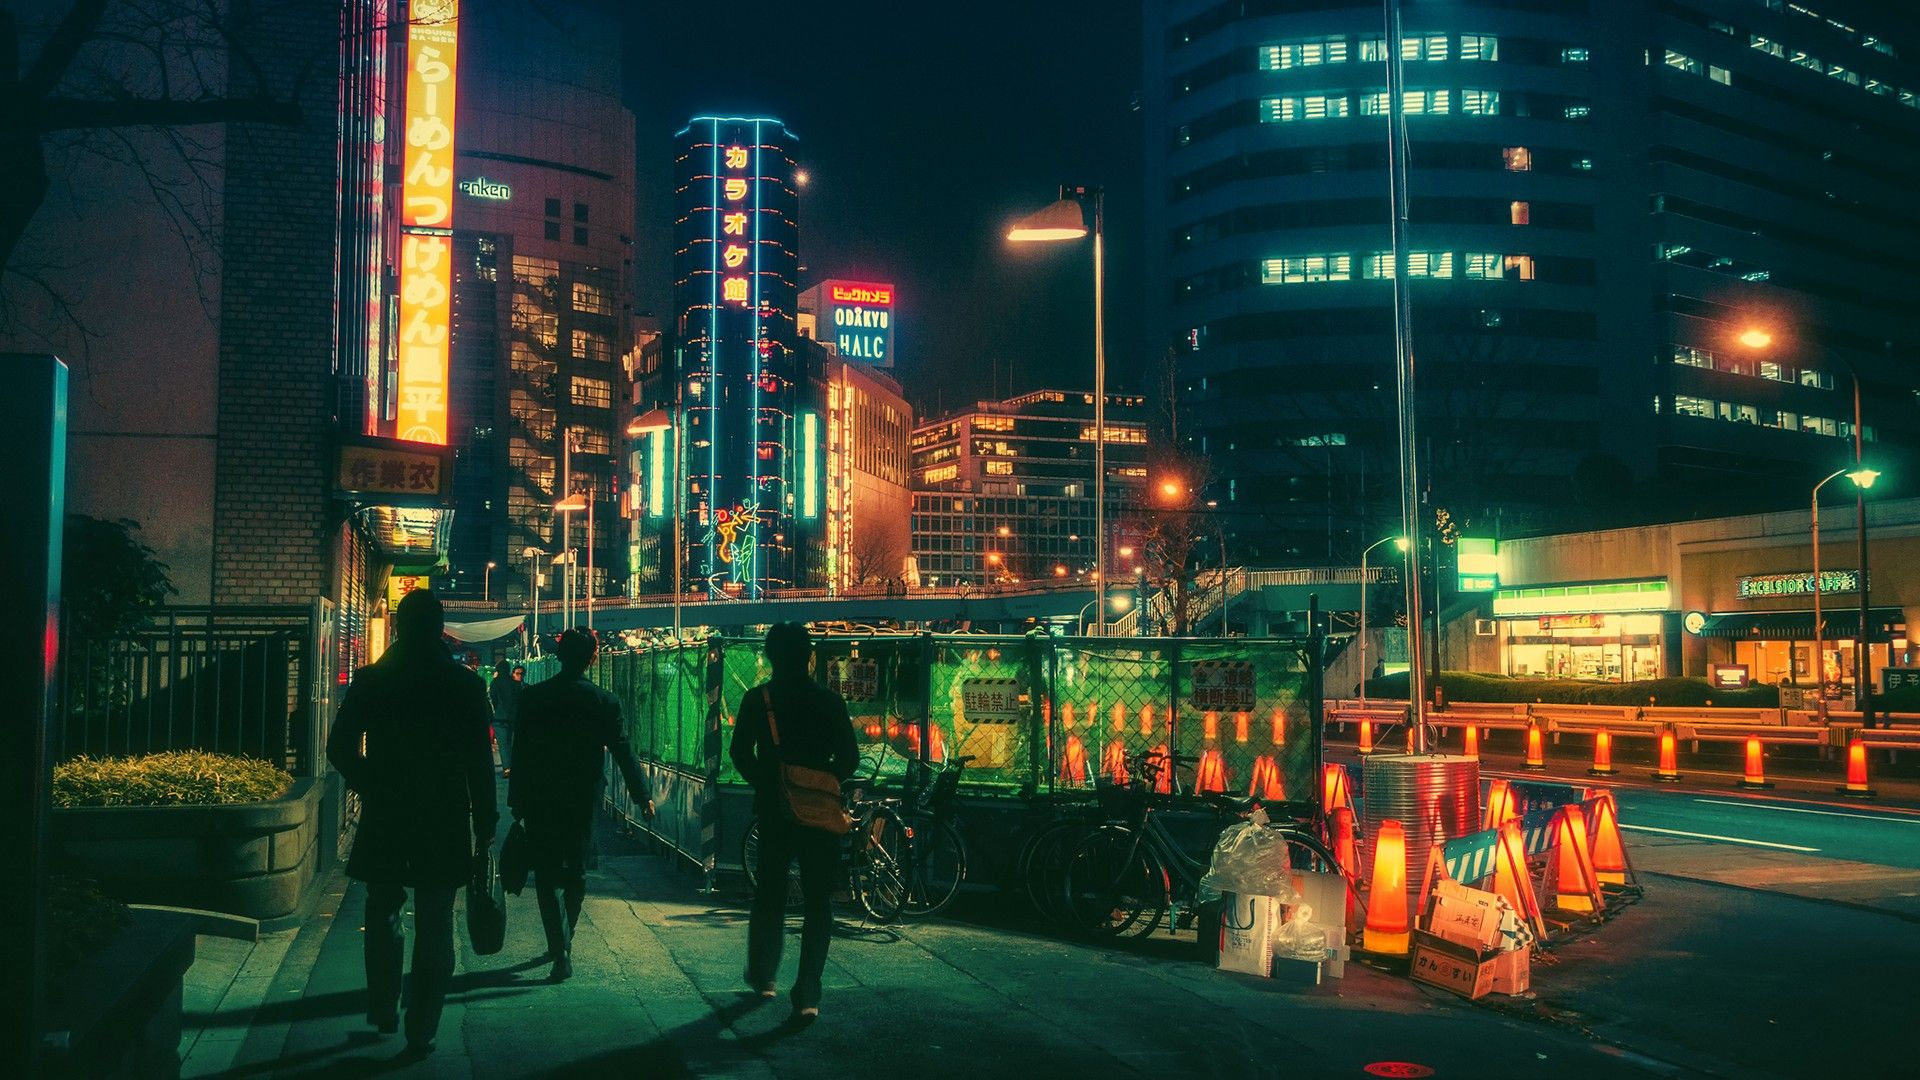 Japan Aesthetic Wallpaper Posted By Christopher Peltier